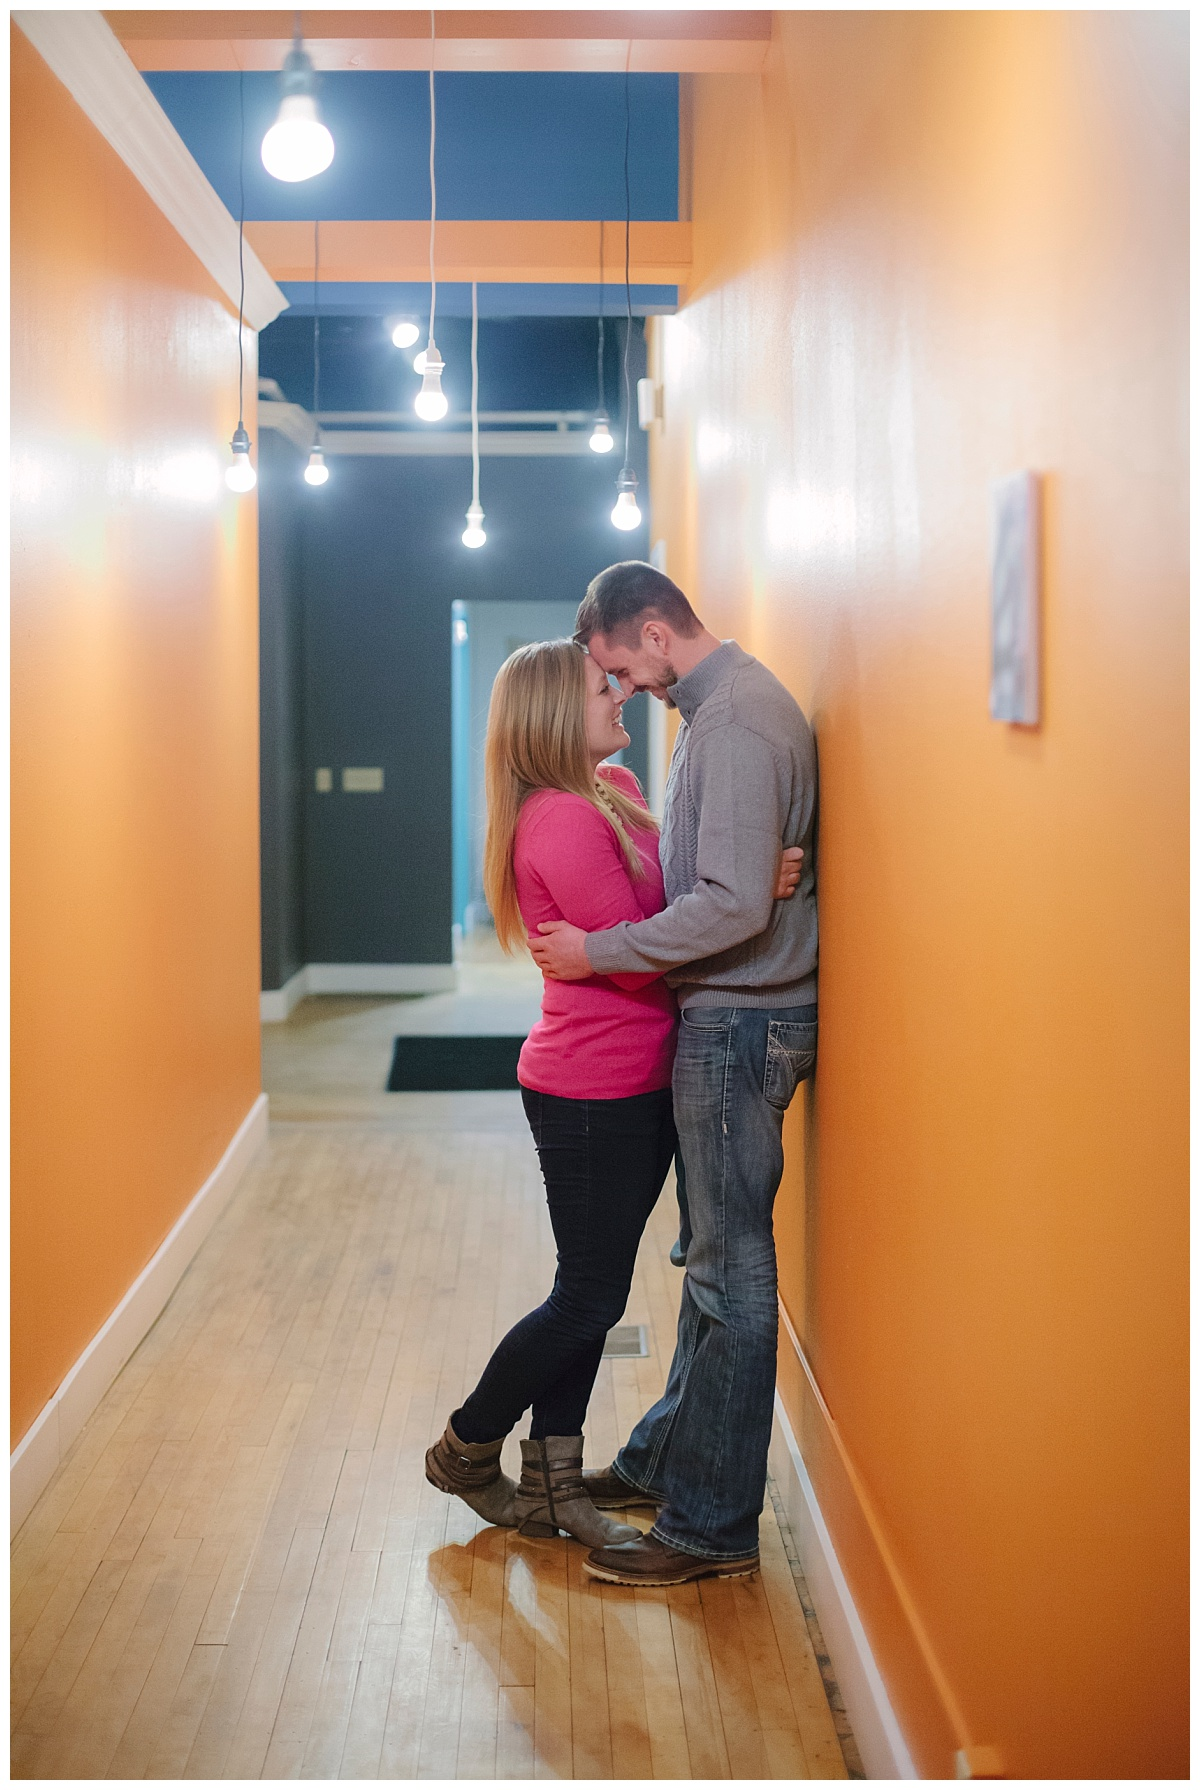 bphotography_winter_siouxfallsweddingphotographer_halfbakedengagementsession_0030.jpg